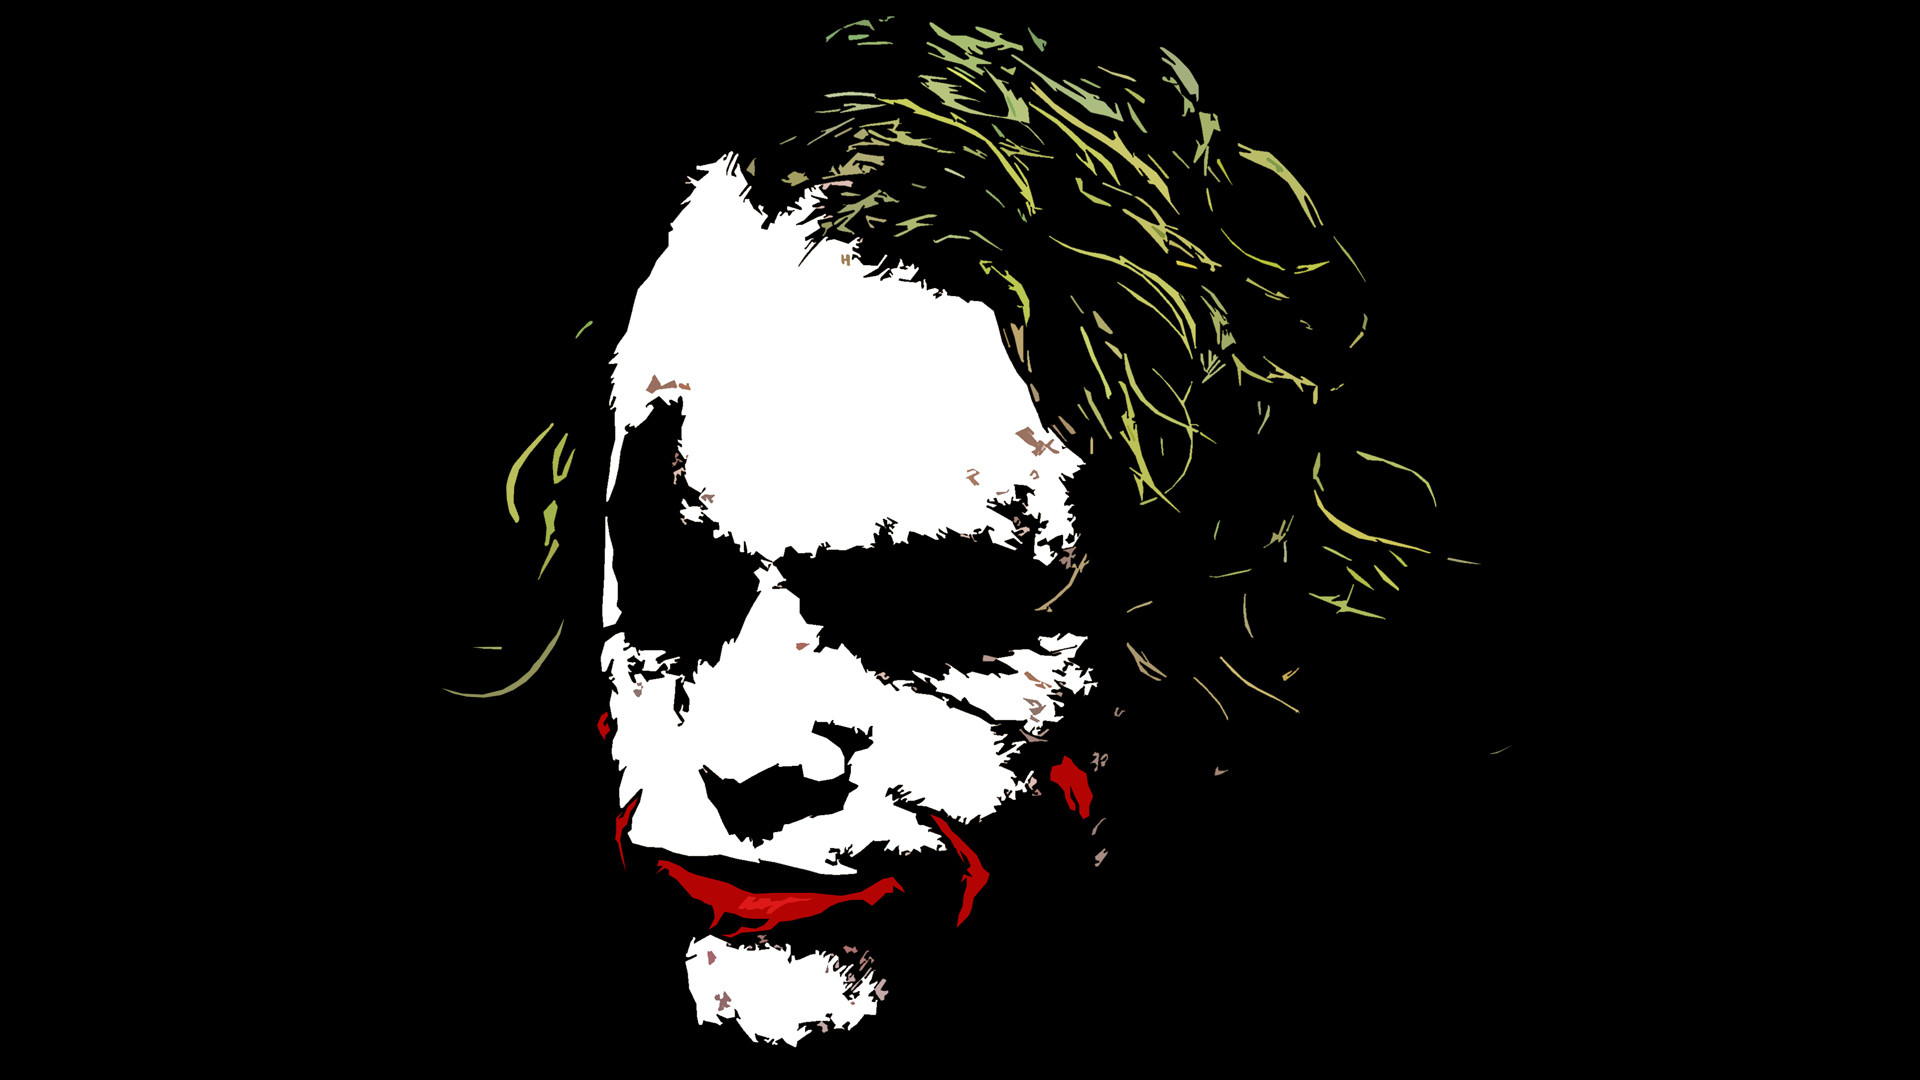 Joker Hd Iphone Wallpapers   Image #782225 .